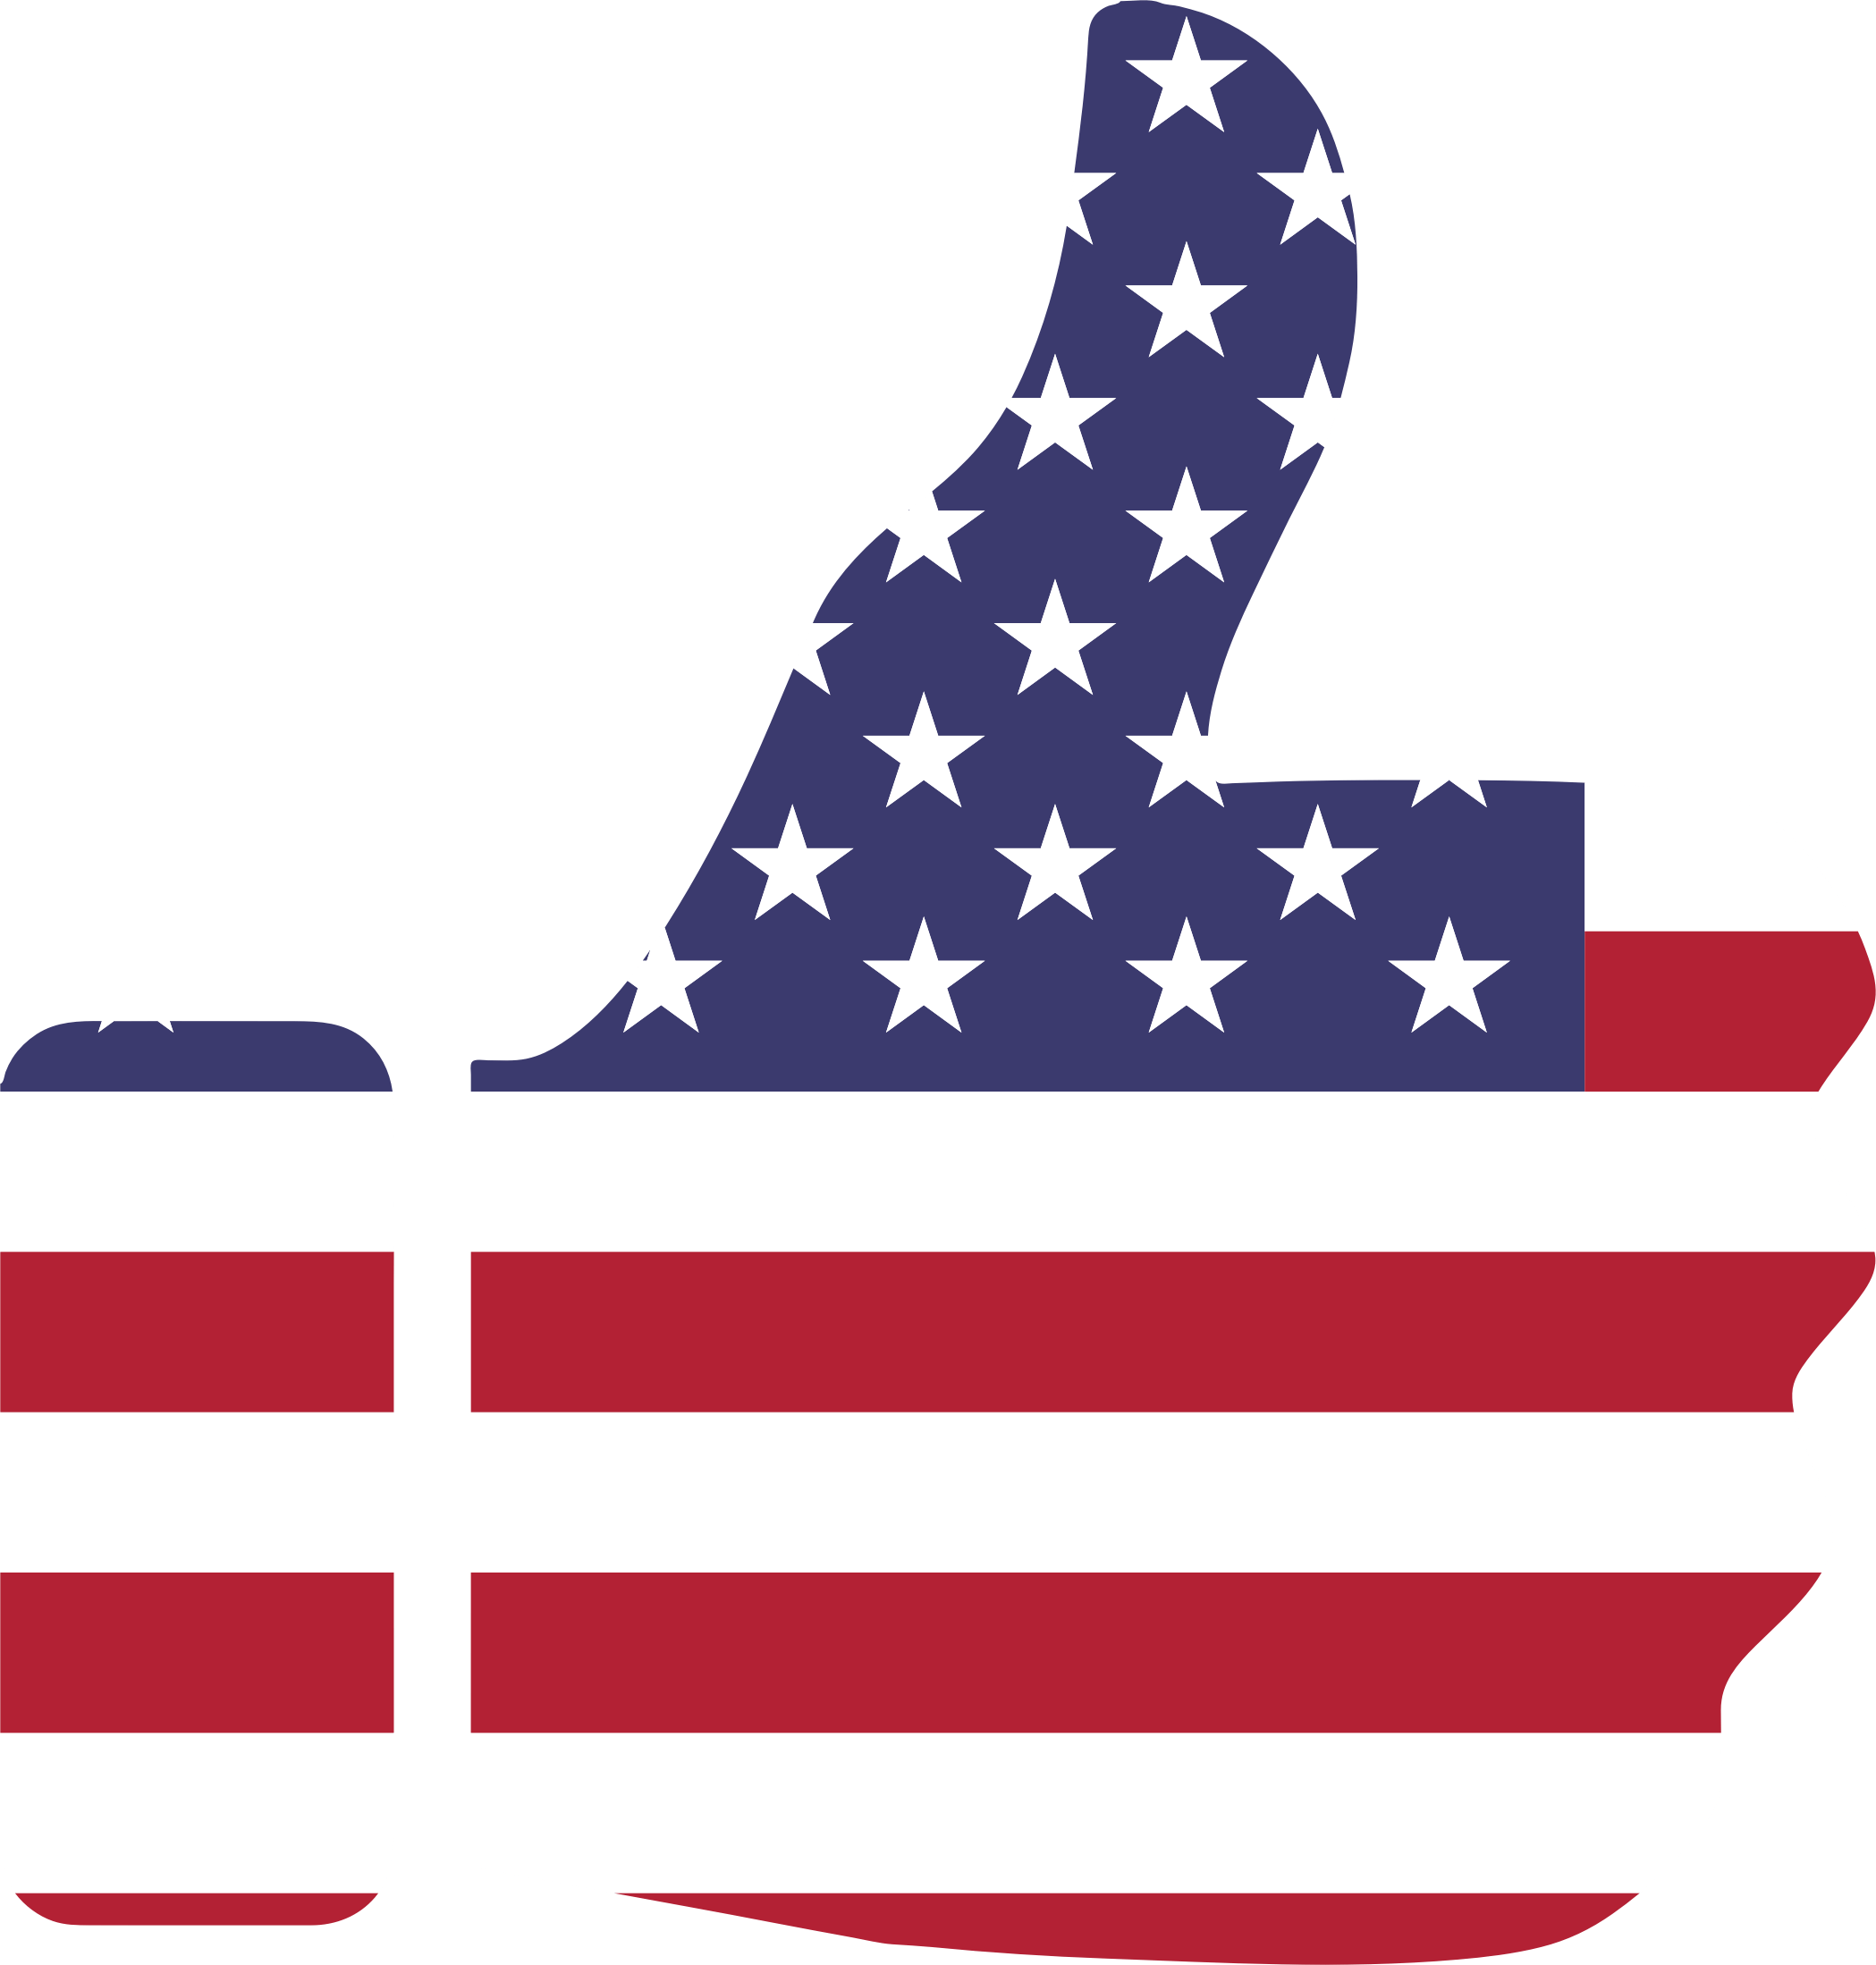 Thumb Up American Flag - American Flag PNG Transparent